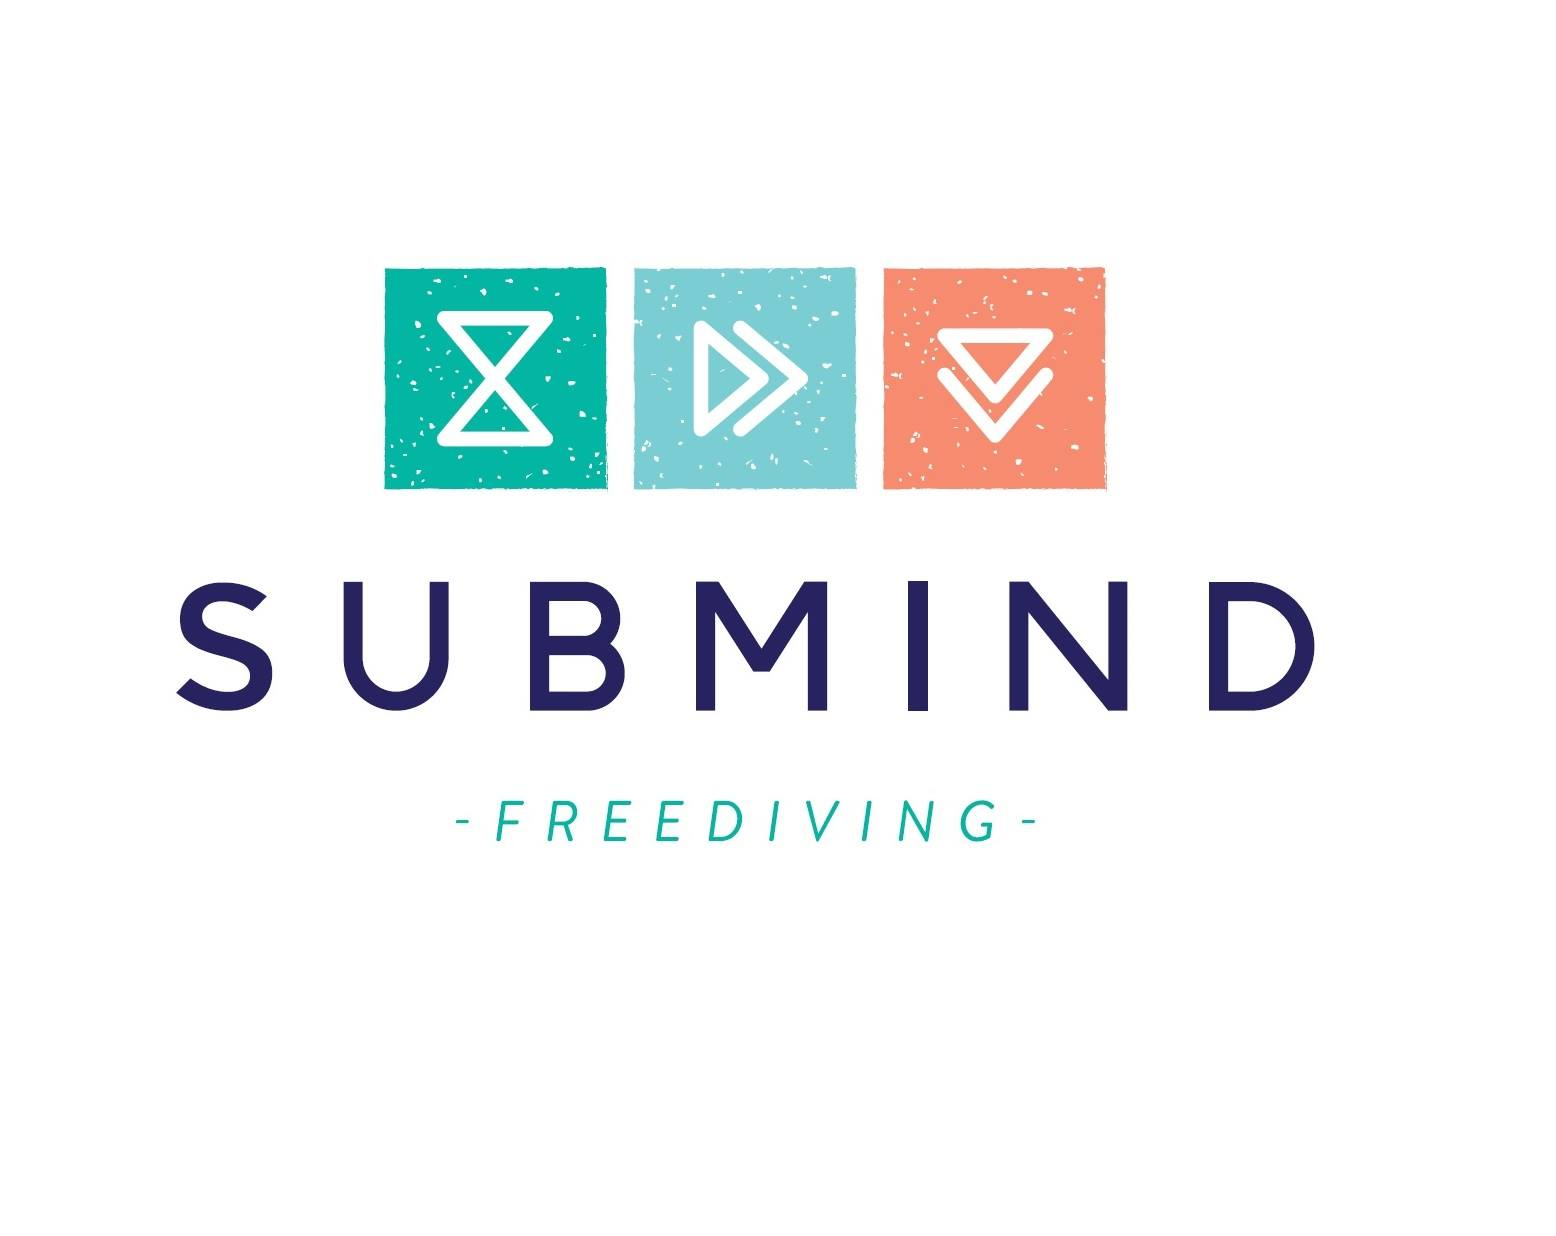 SUBMIND